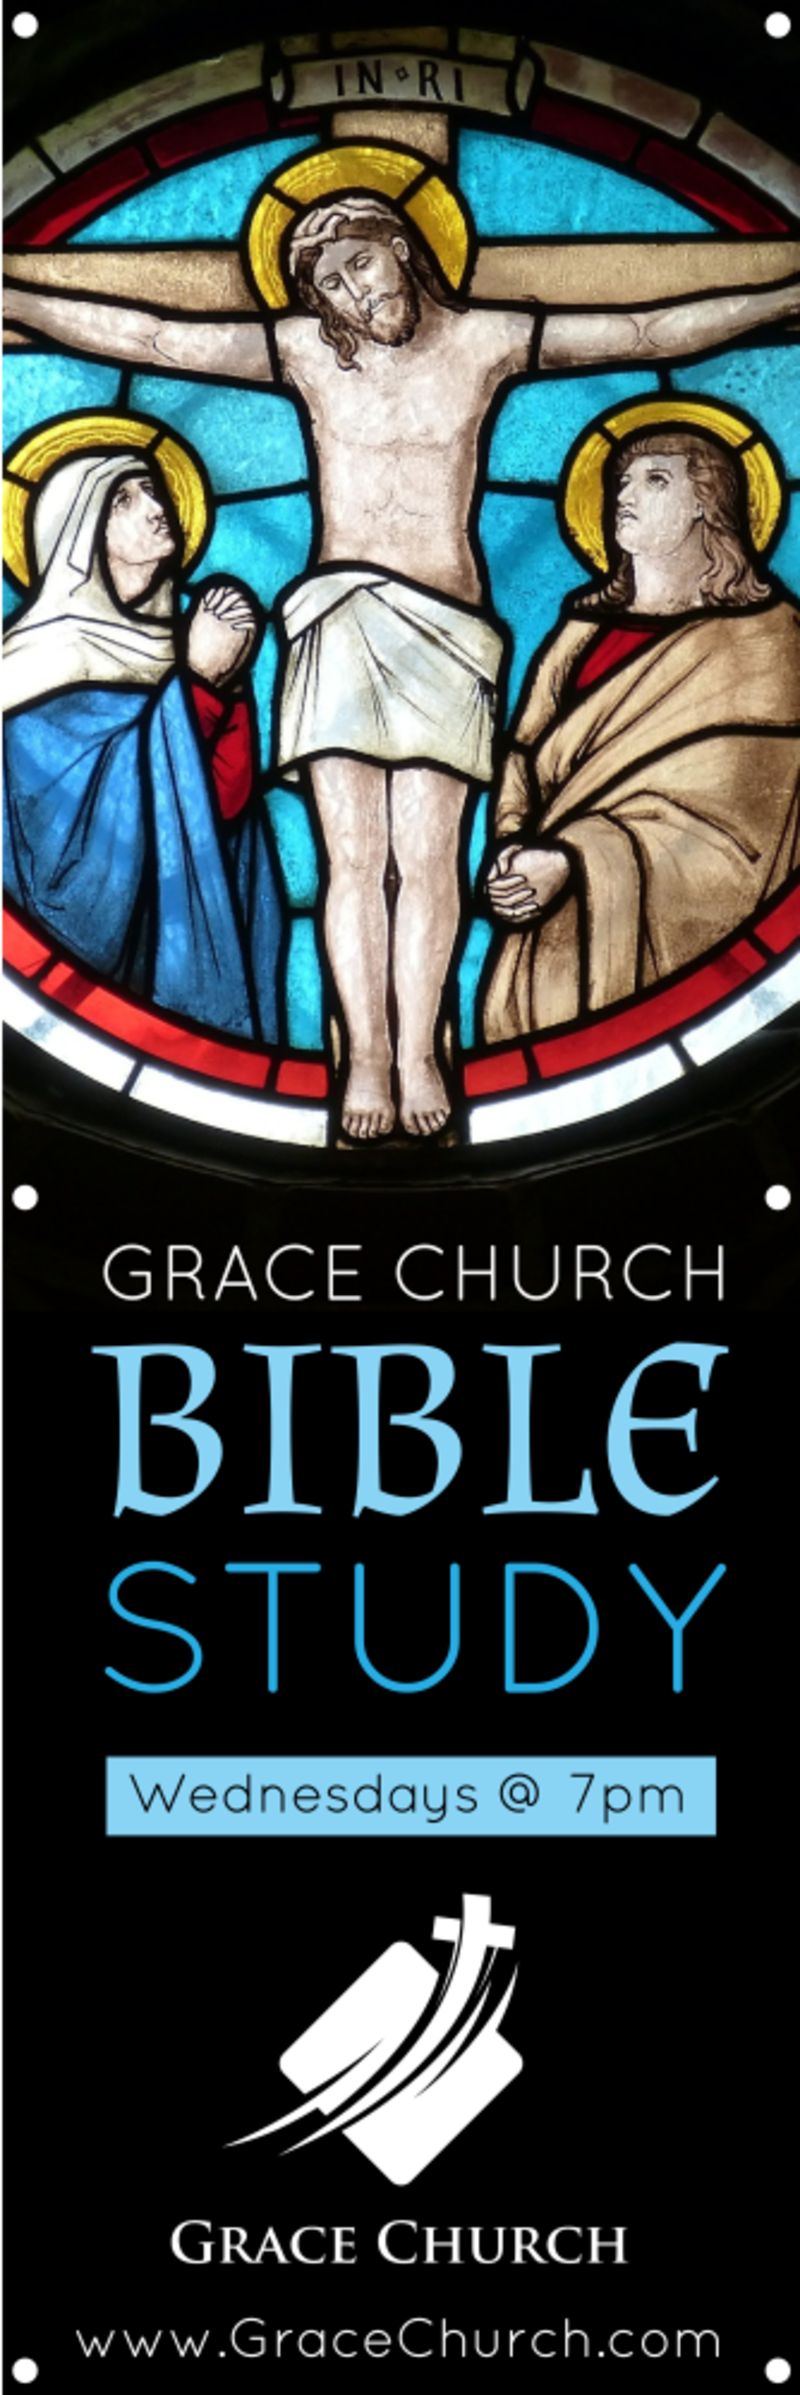 Church Bible Study Banner Template Preview 2